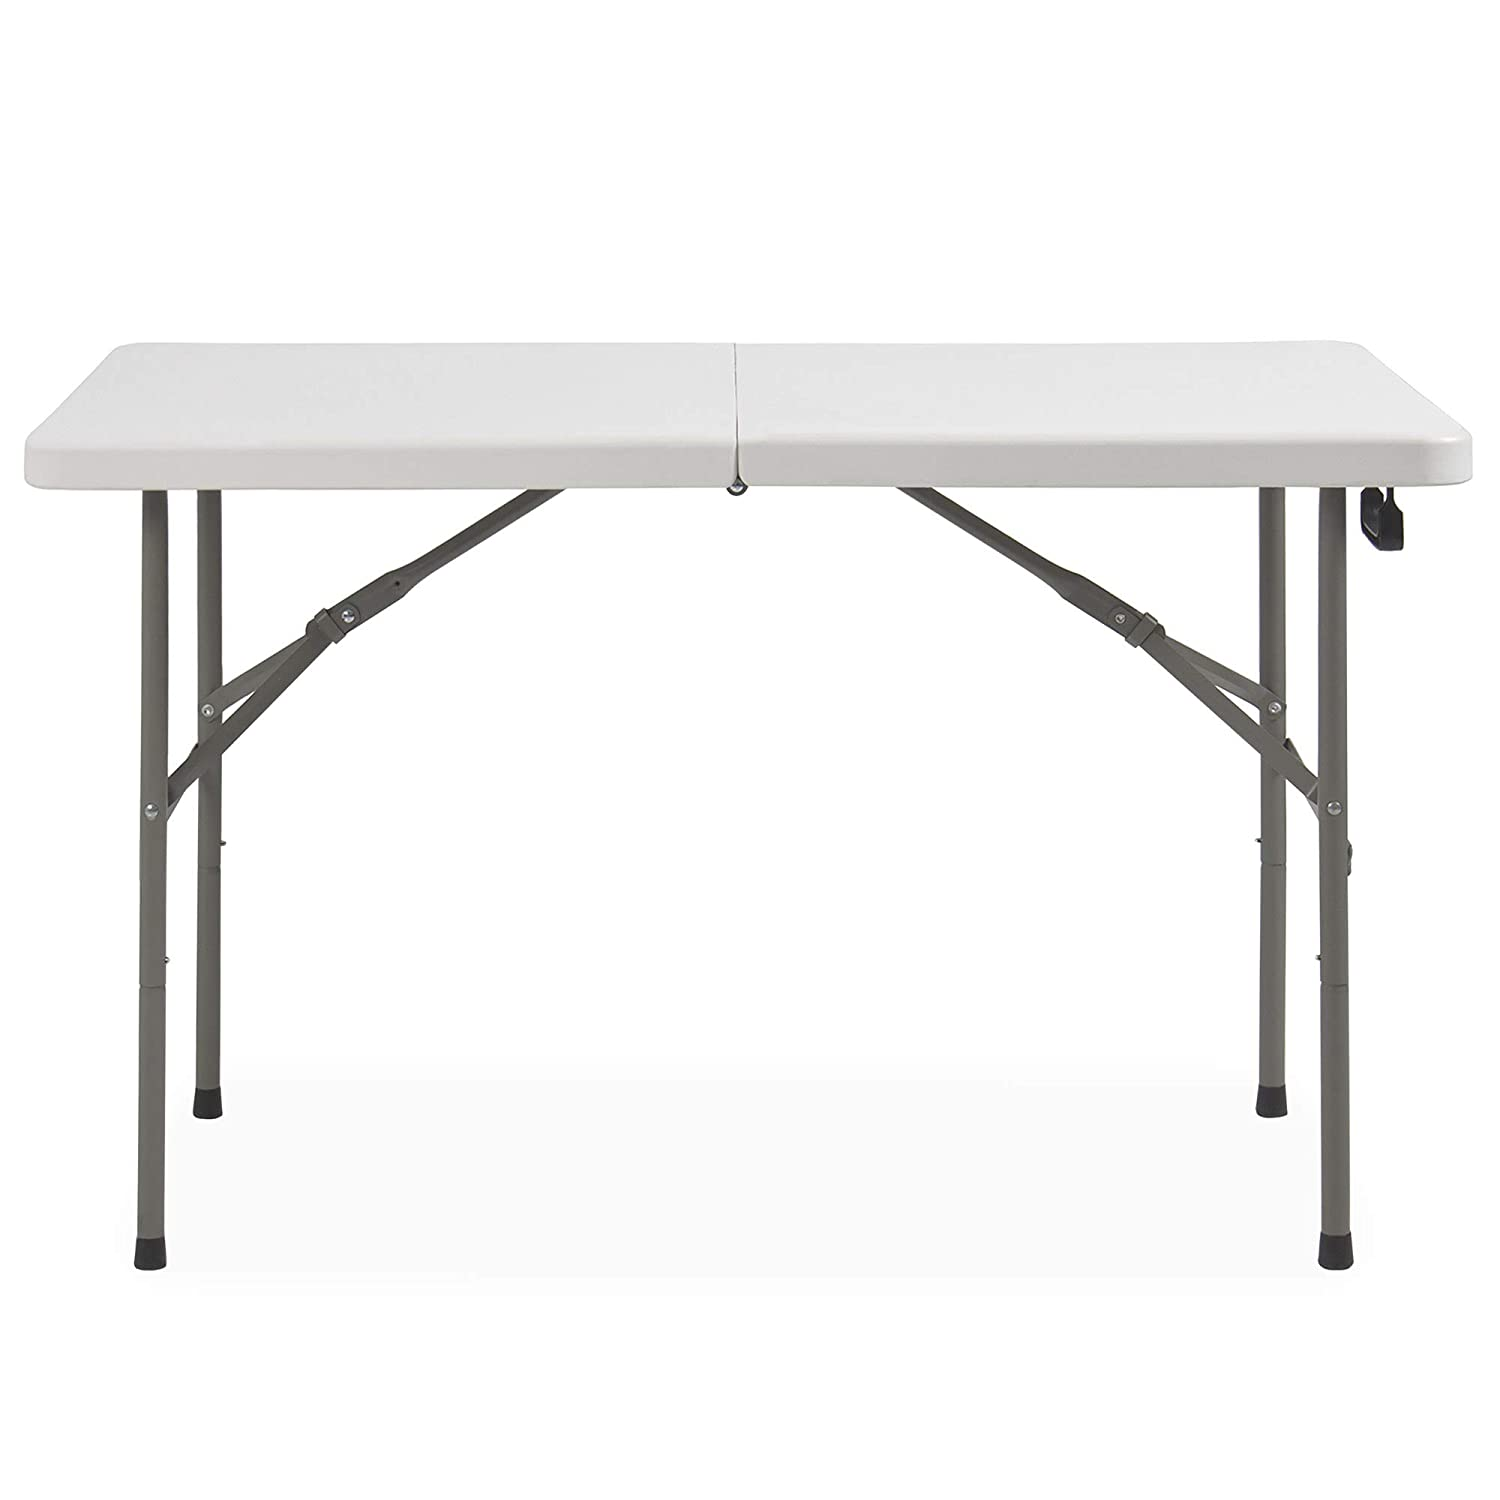 Best Choice Products Portable 4 Foot Folding Utility Table – White